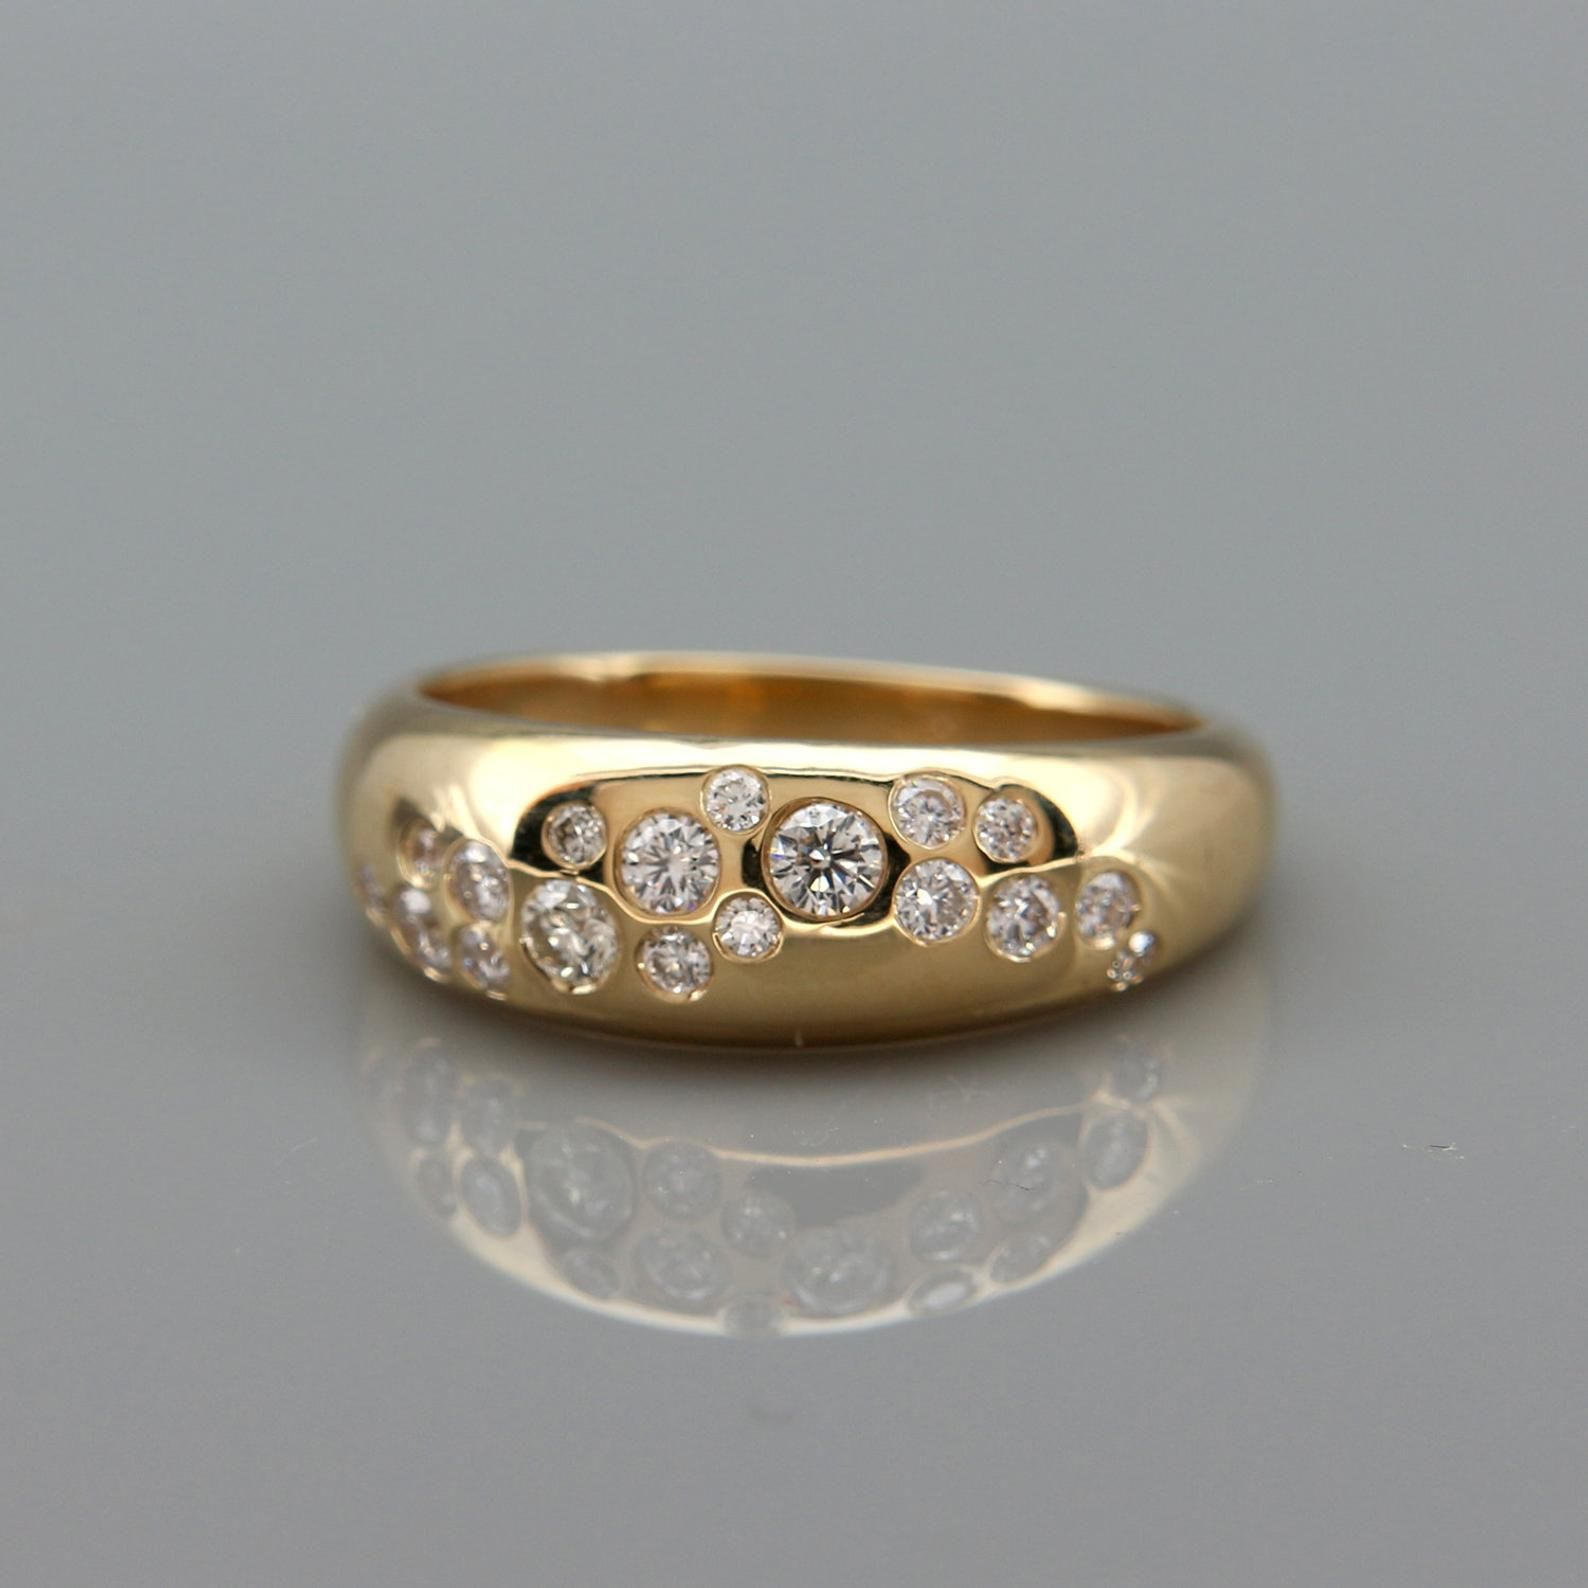 Diamond Cluster Ring 14k Solid Gold Wide Wedding Band set